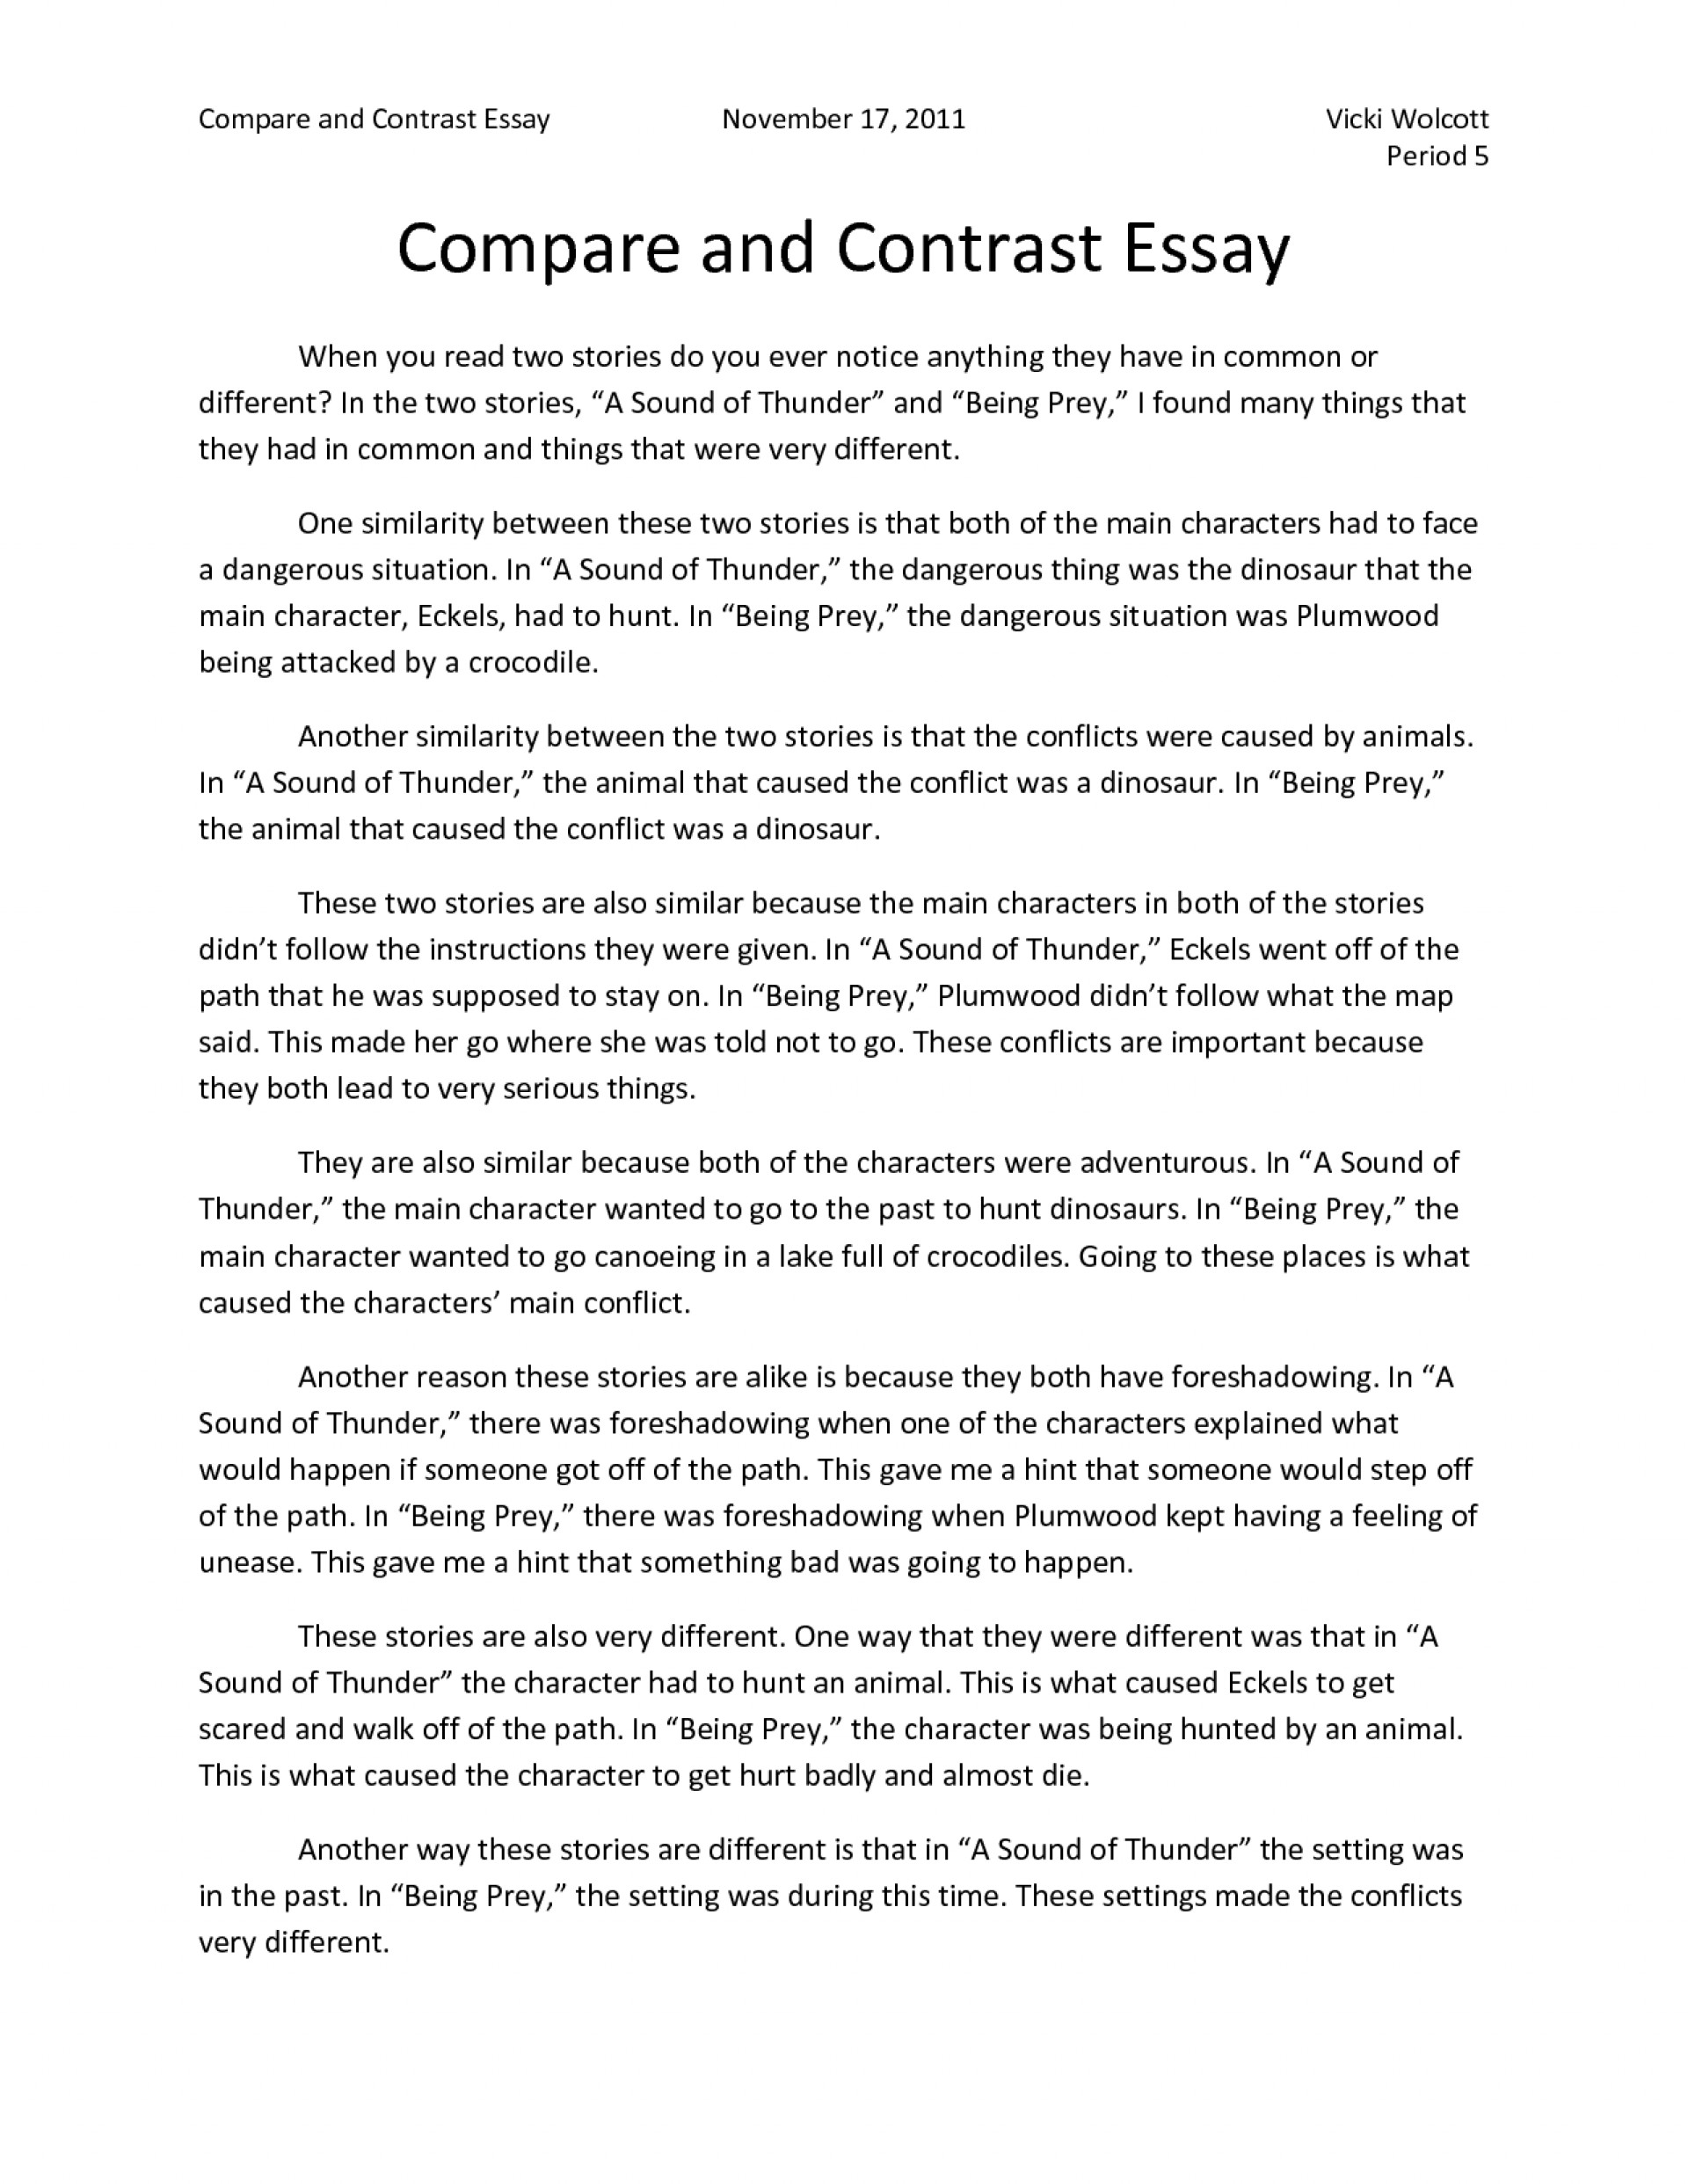 004 Essay Example Compare And Contrast Gallery Template Drawing Art Throughout College Examples Introduction Question Scholarship Free Edexcel Conclusion Frightening Sample 4th Grade Paragraph Ideas 1920